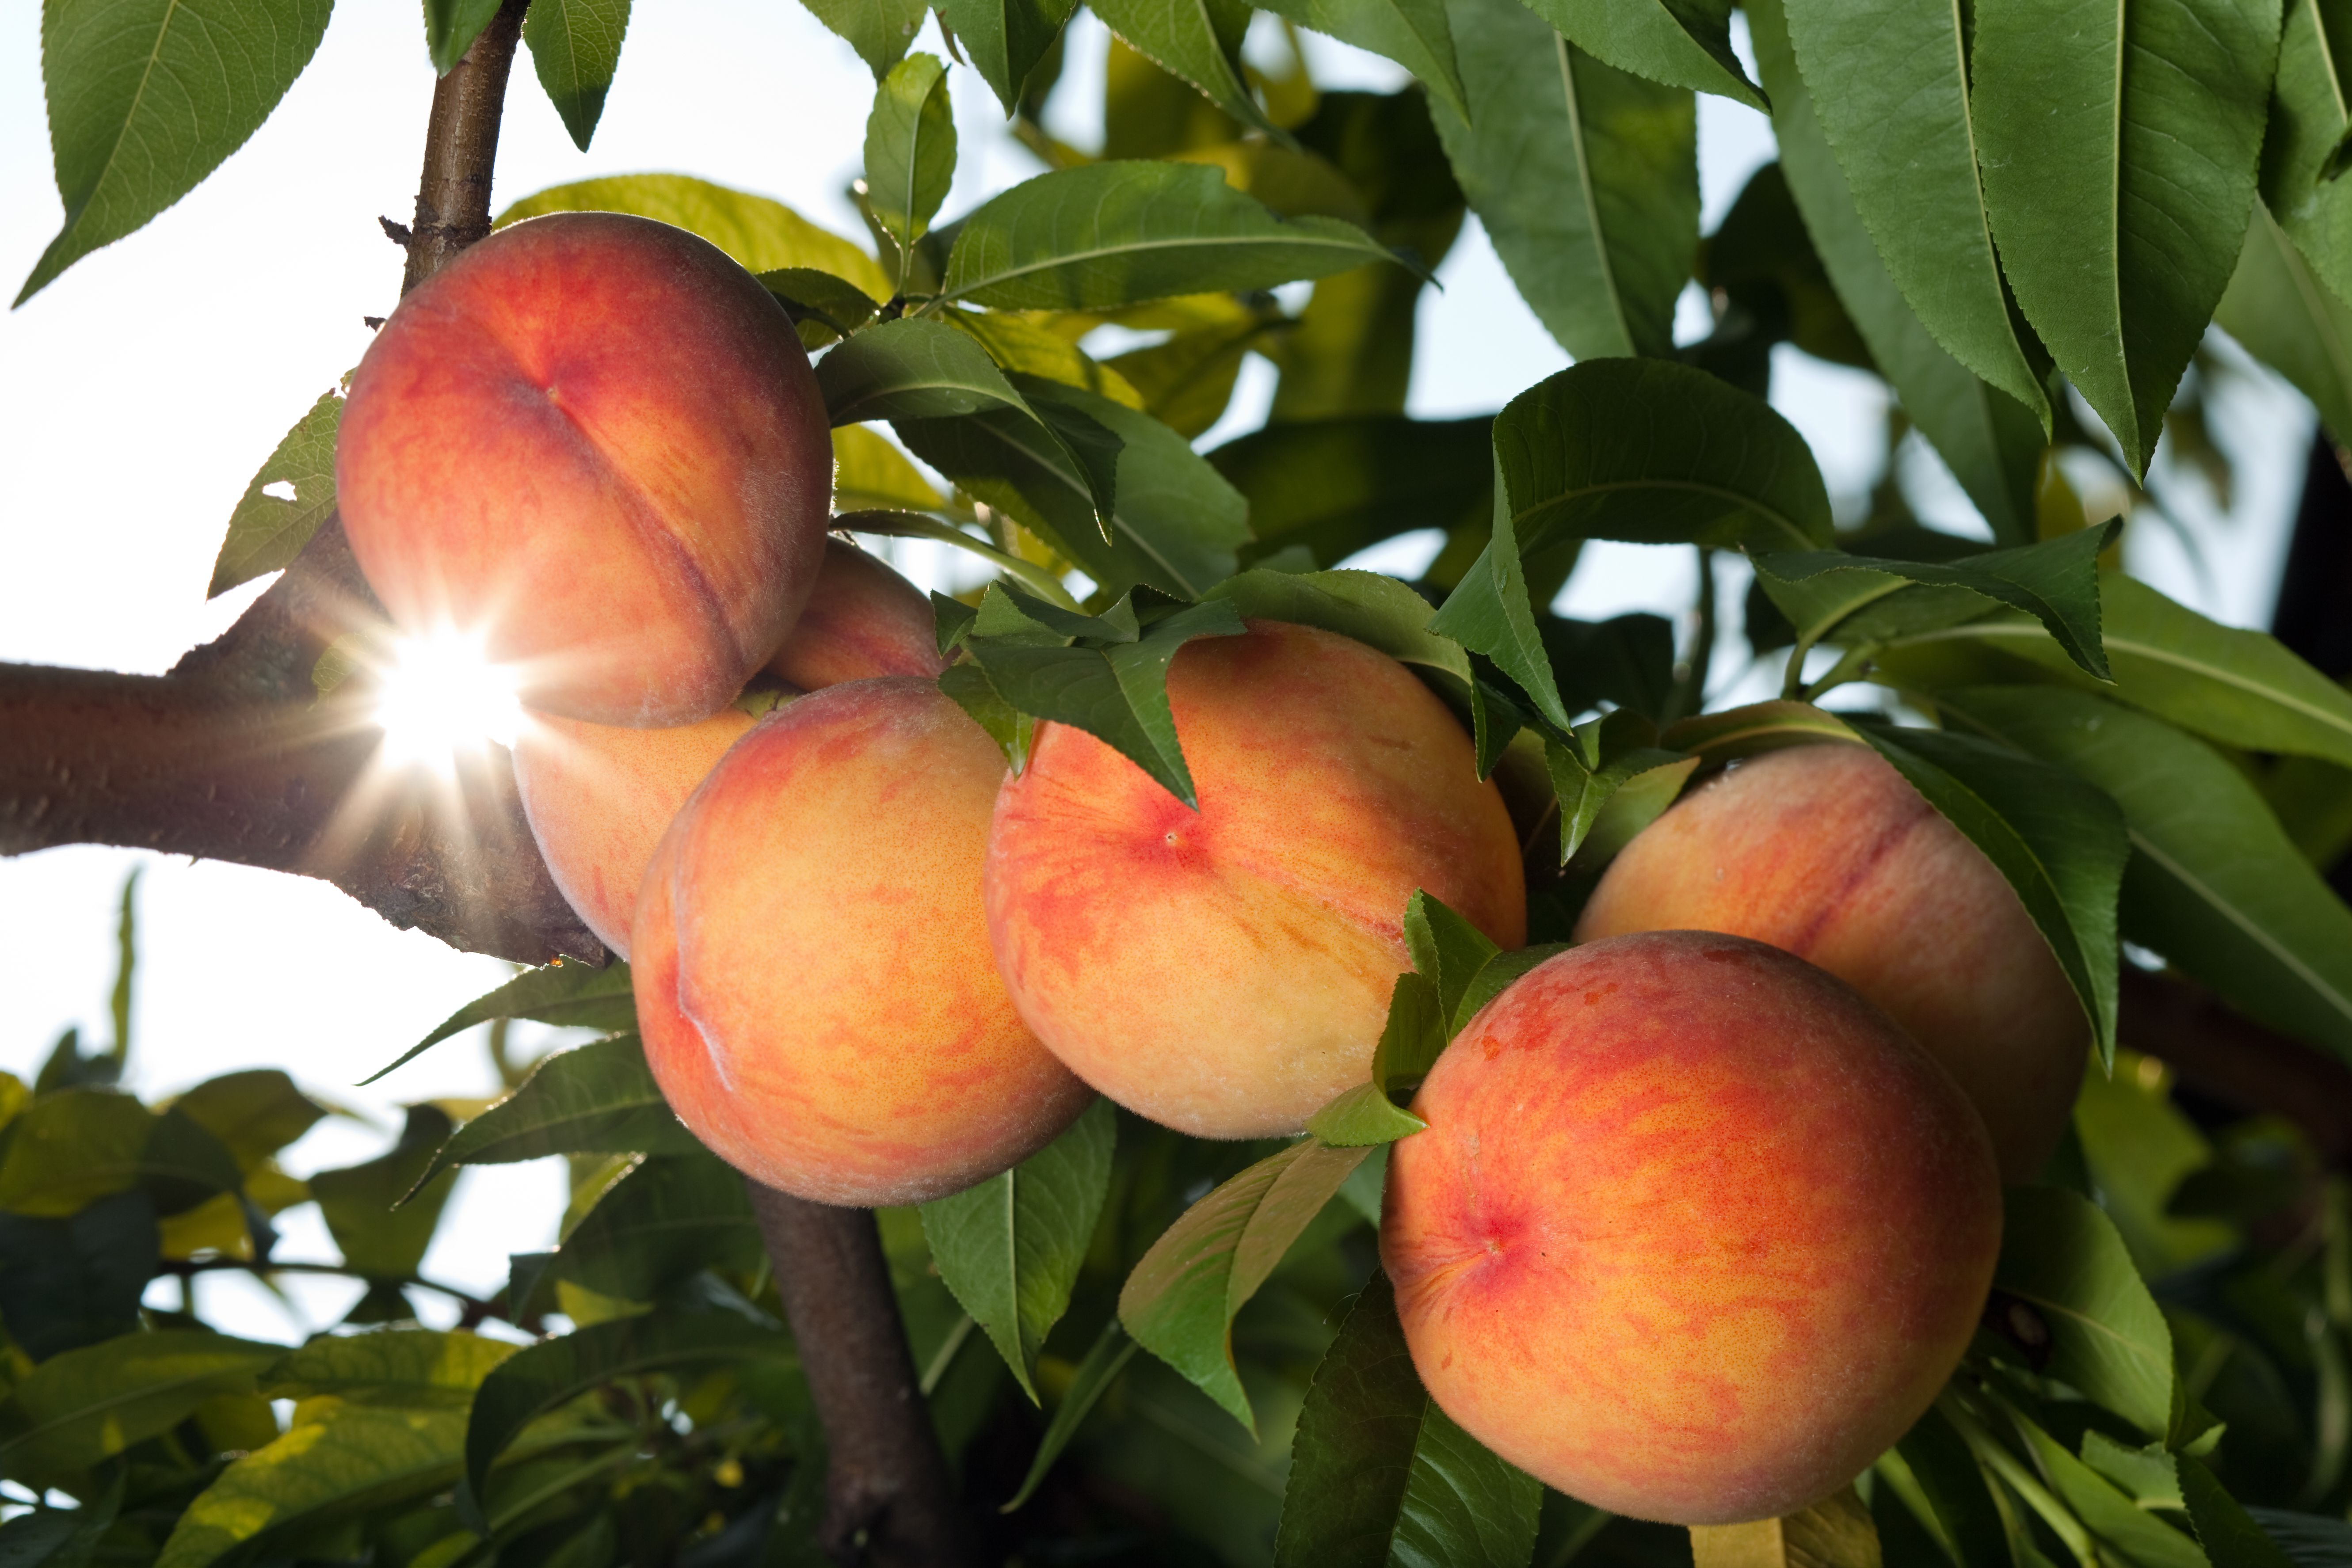 Juicy red peaches ripen on the tree